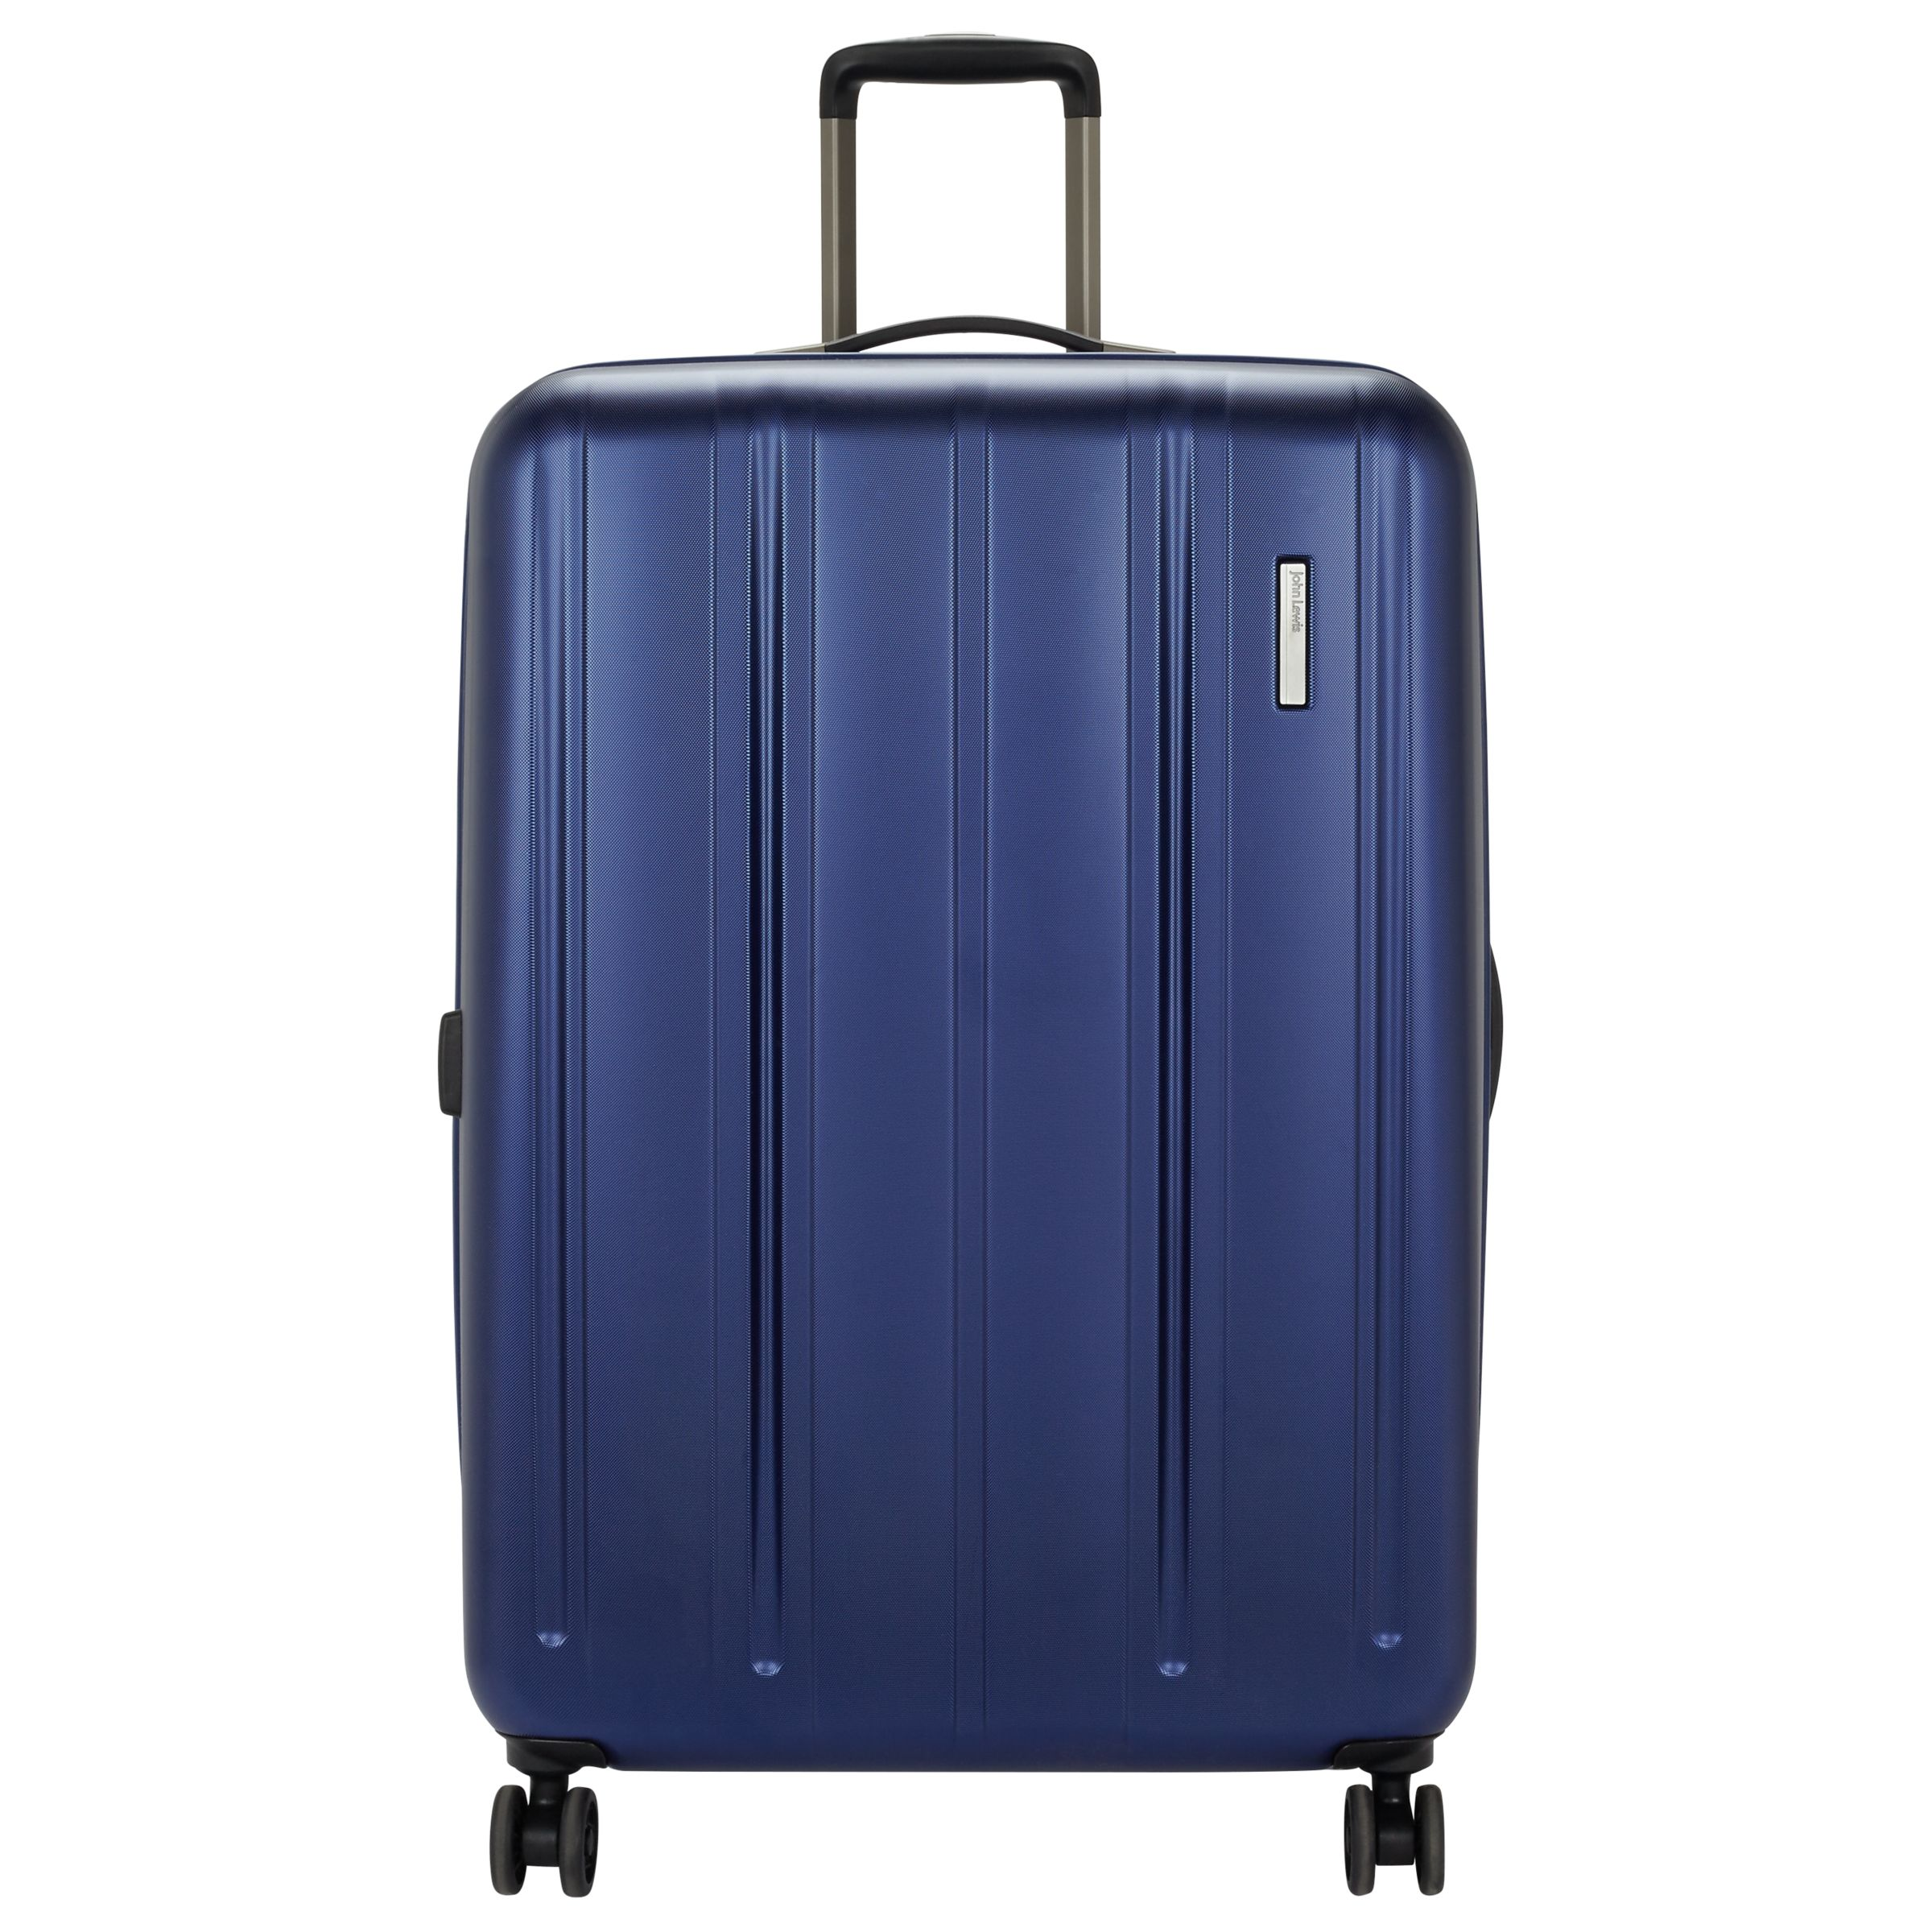 john lewis munich 4 wheel spinner 80cm suitcase gay times uk. Black Bedroom Furniture Sets. Home Design Ideas